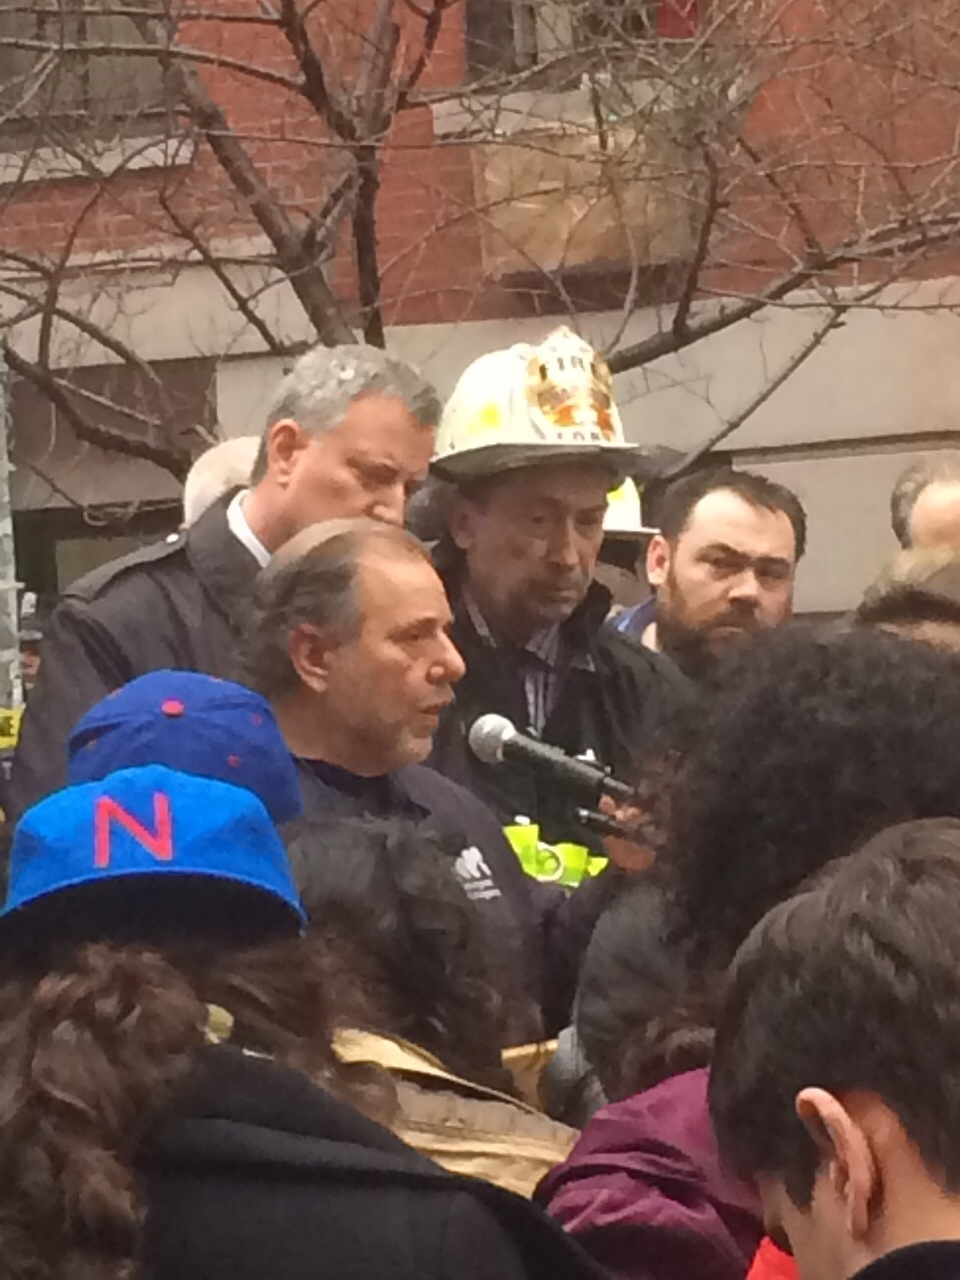 Remarks By NYC Mayor De Blaiso At Scene Of Manhattan Building Collapse